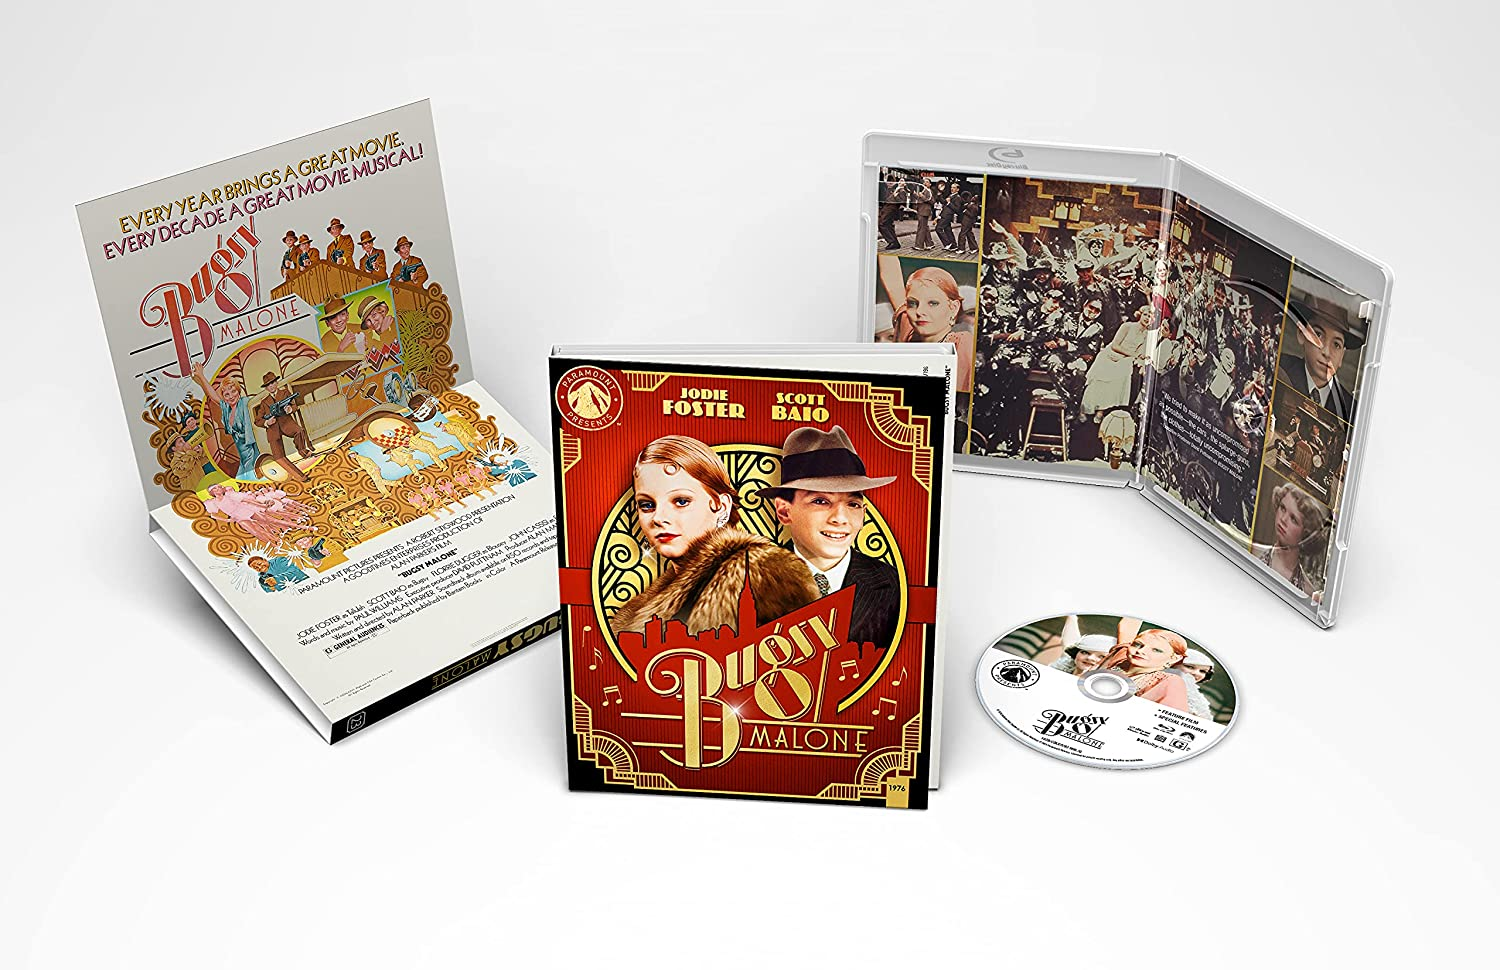 BUGSY MALONE NOW AVAILABLE ON PARAMOUNT PRESENTS BLU-RAY